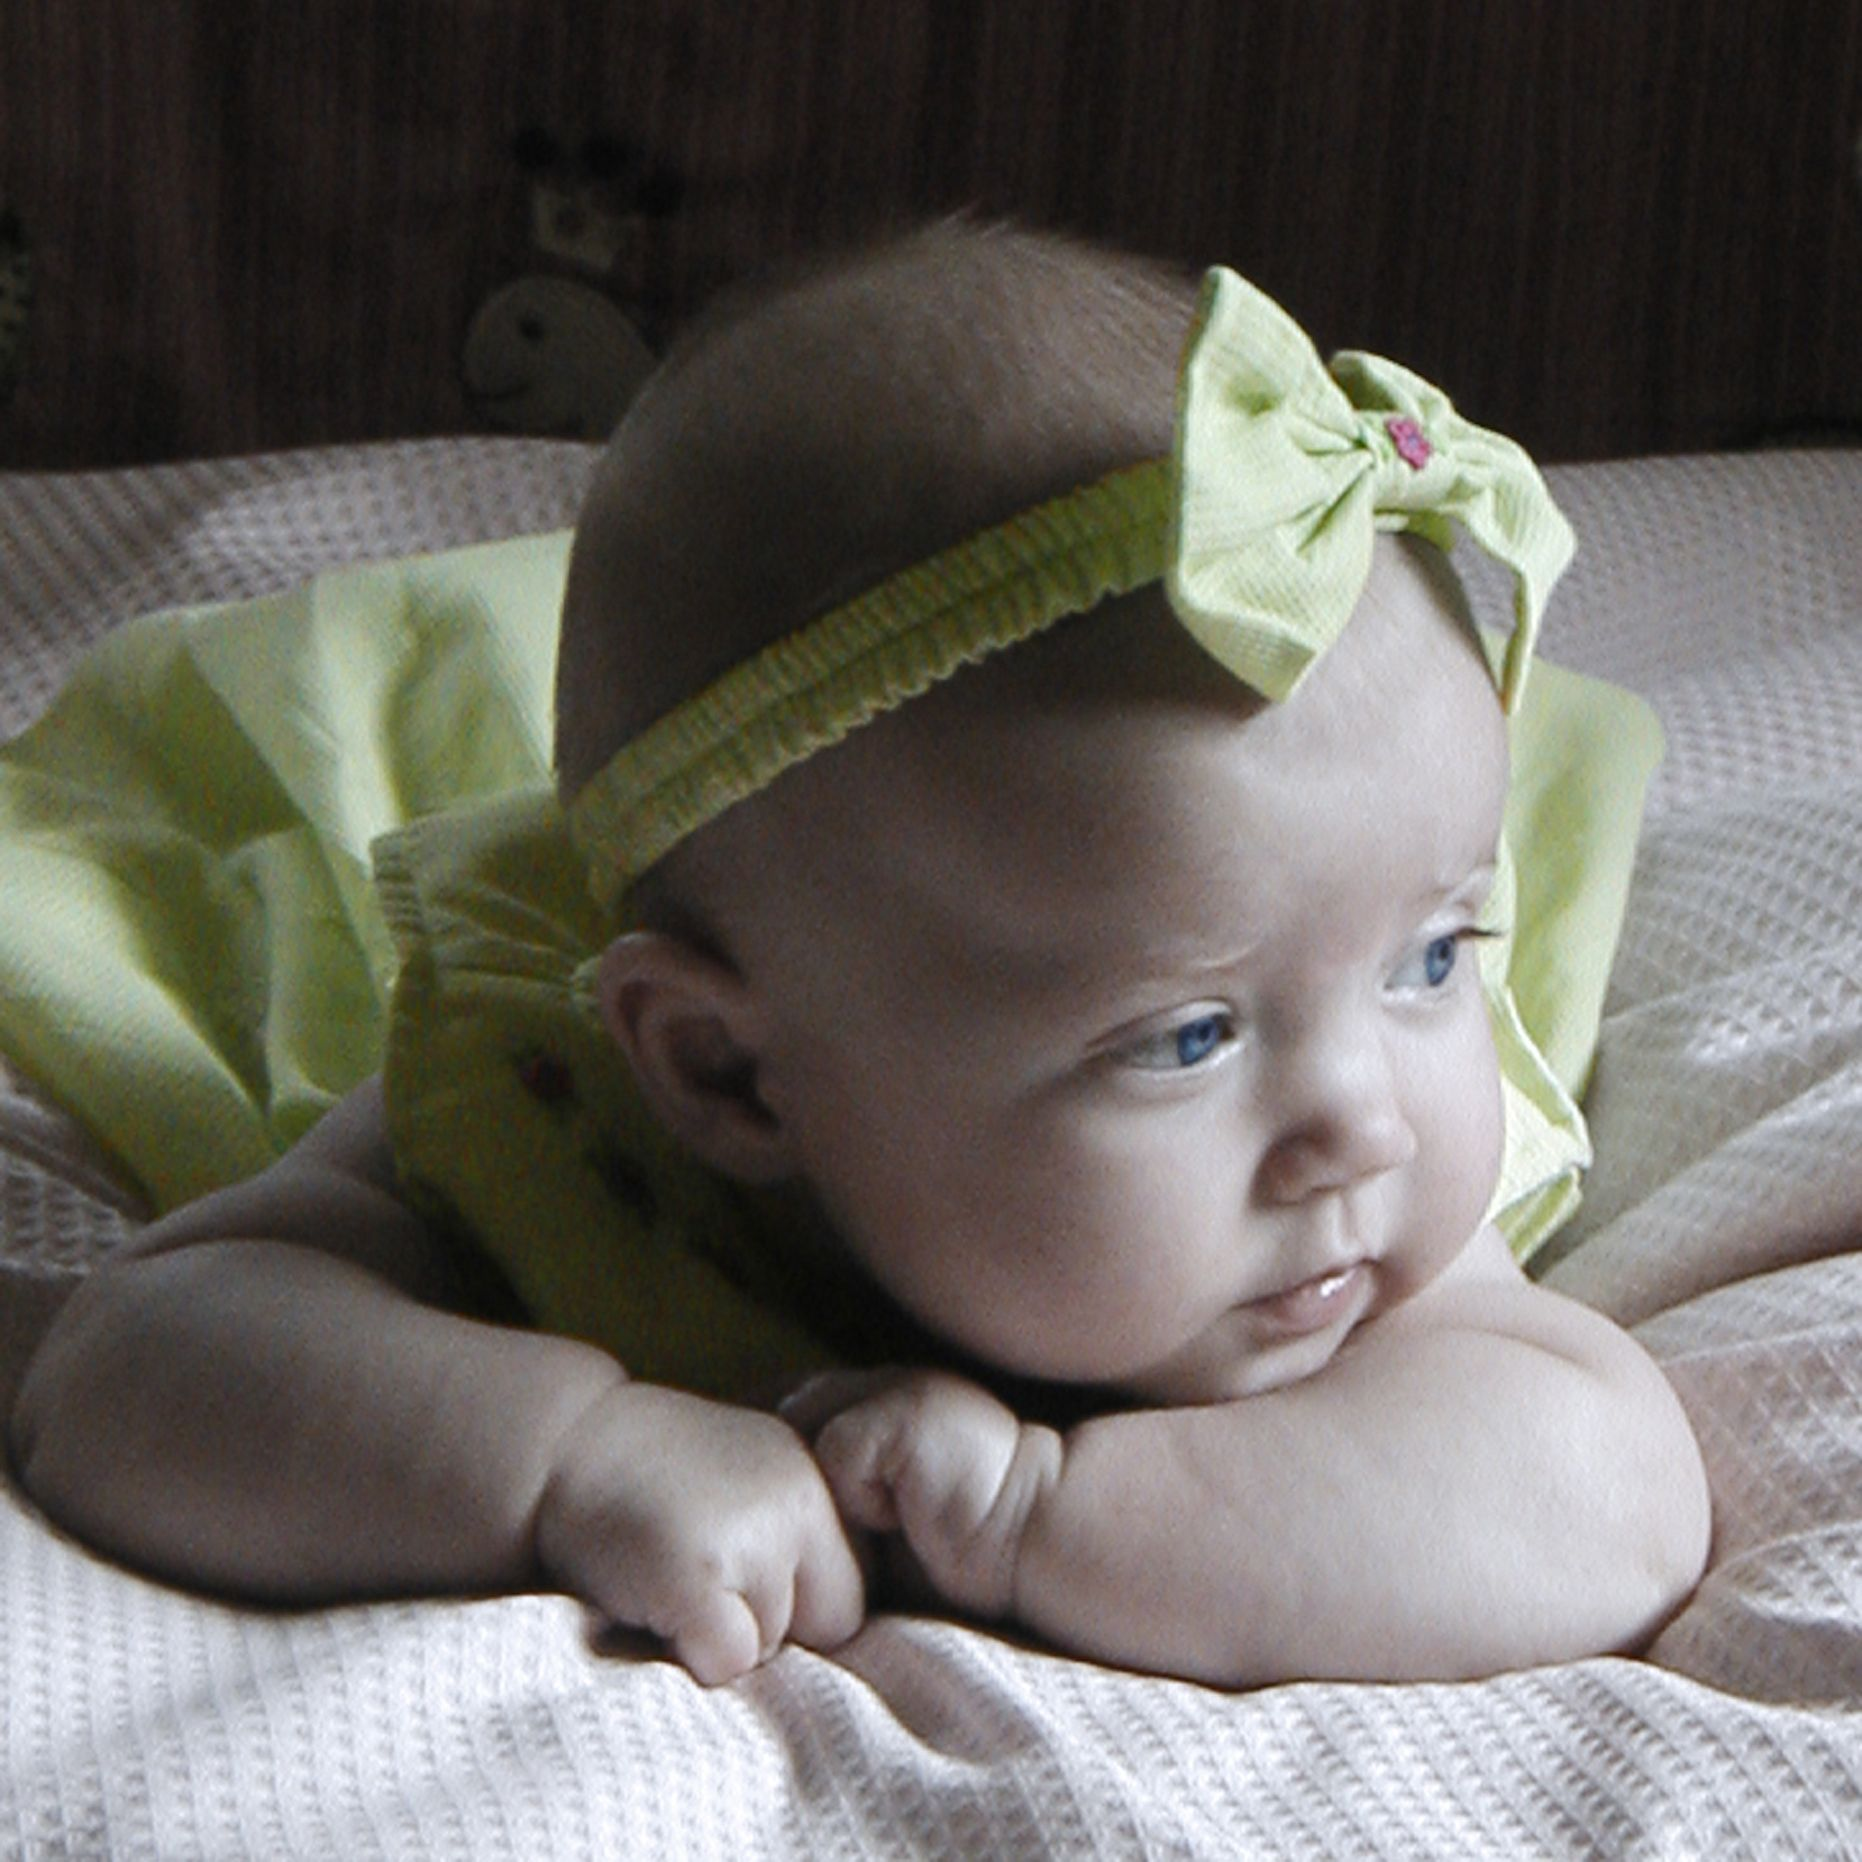 My daughter Lindsay when she was an infant.